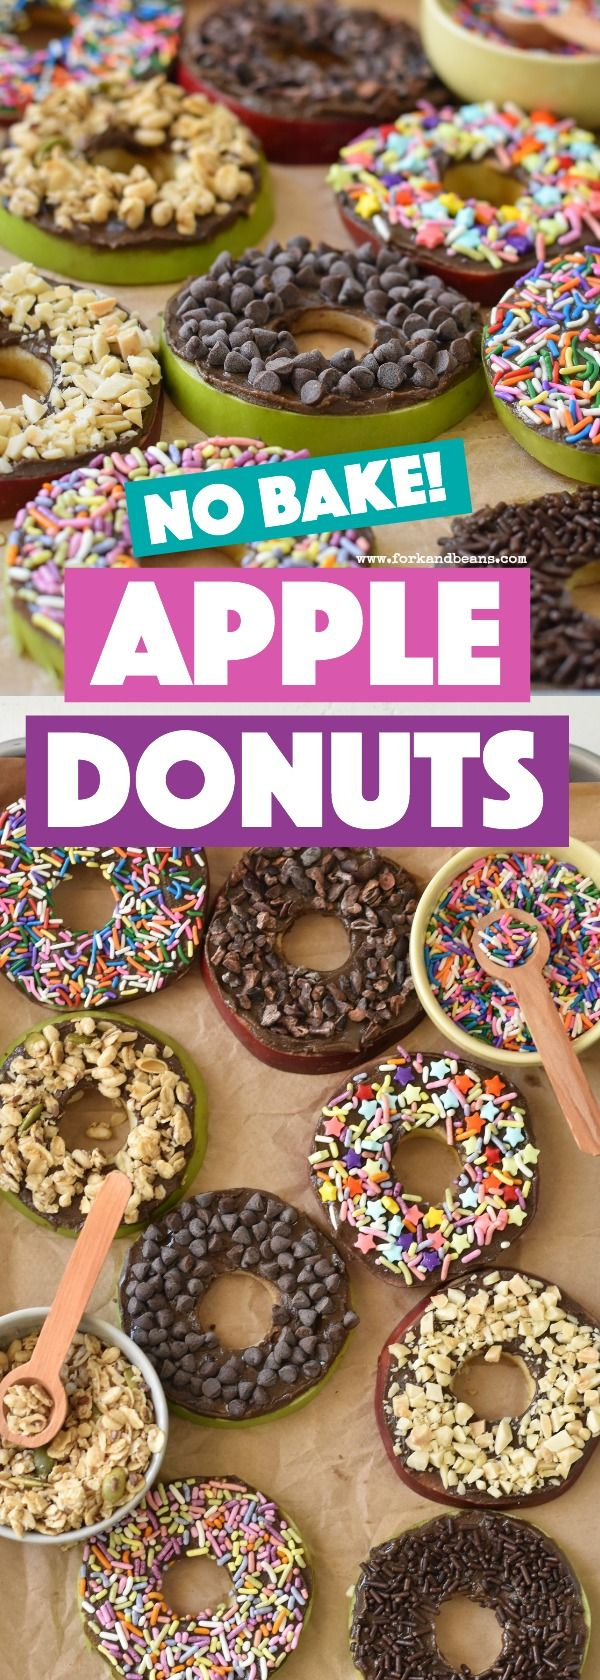 These easy, no bake apple donuts are the perfect after school snack for kids, full of healthy and good-for-you ingredients.